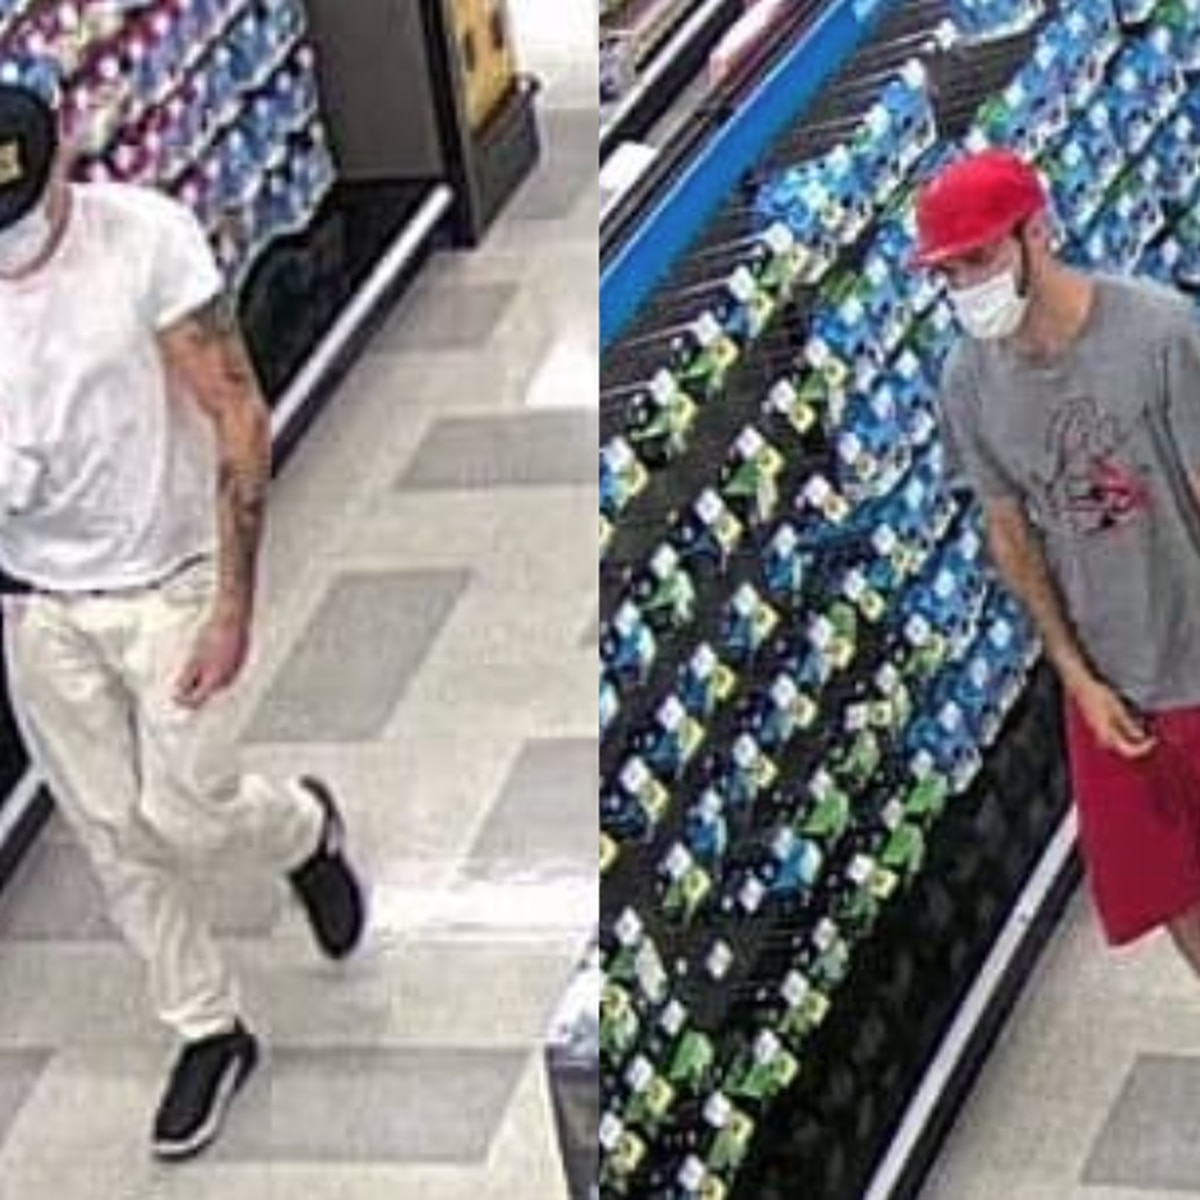 Lorain Police want duo accused of stealing $2500 in merchandise from store